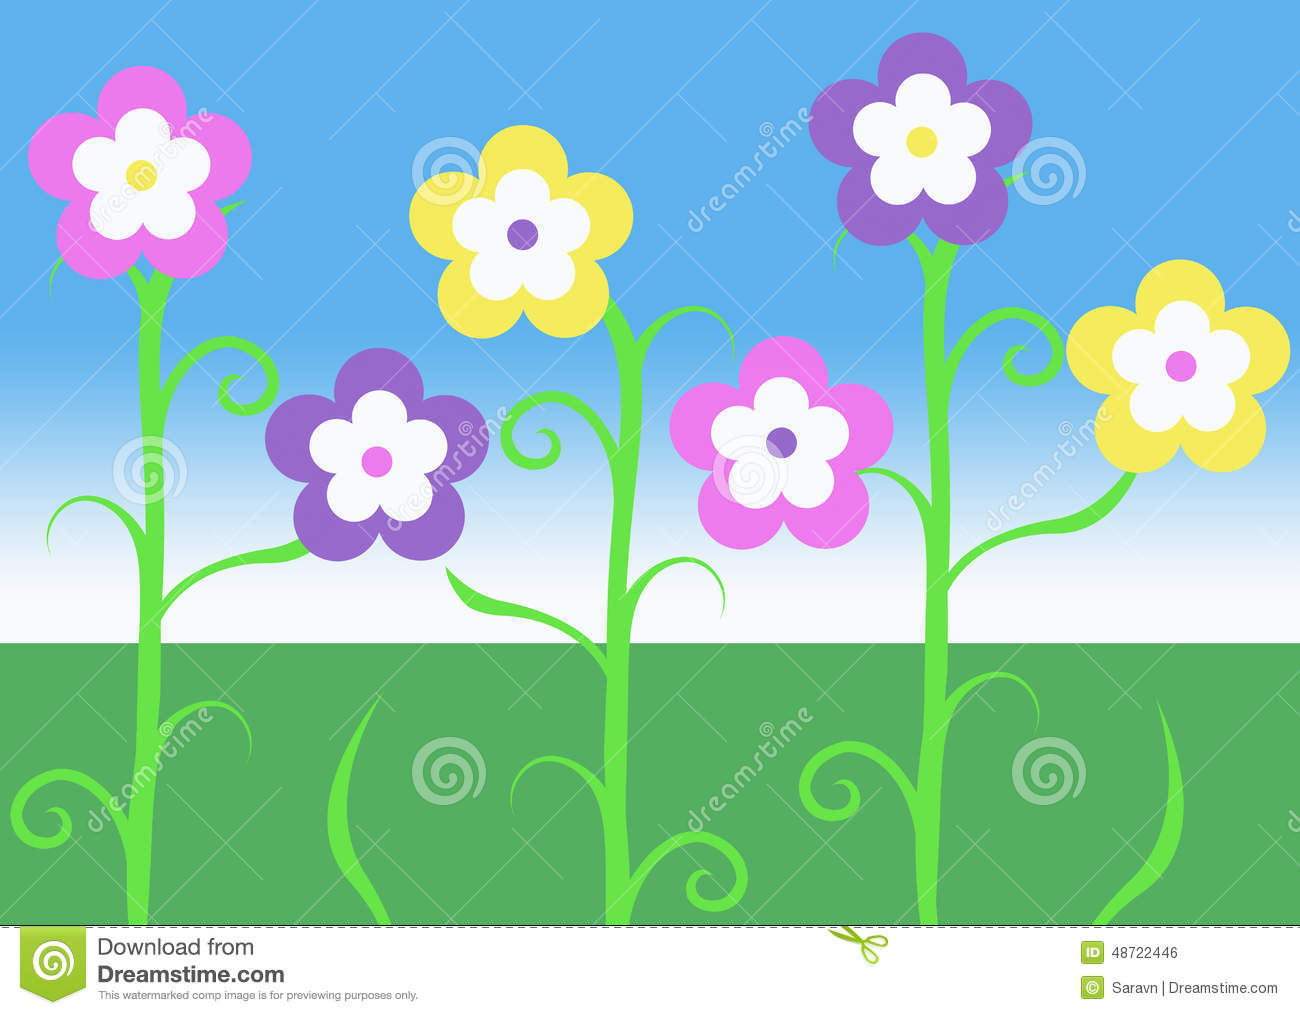 Pink Purple And Yellow Spring Easter Vine Flowers Illustration.